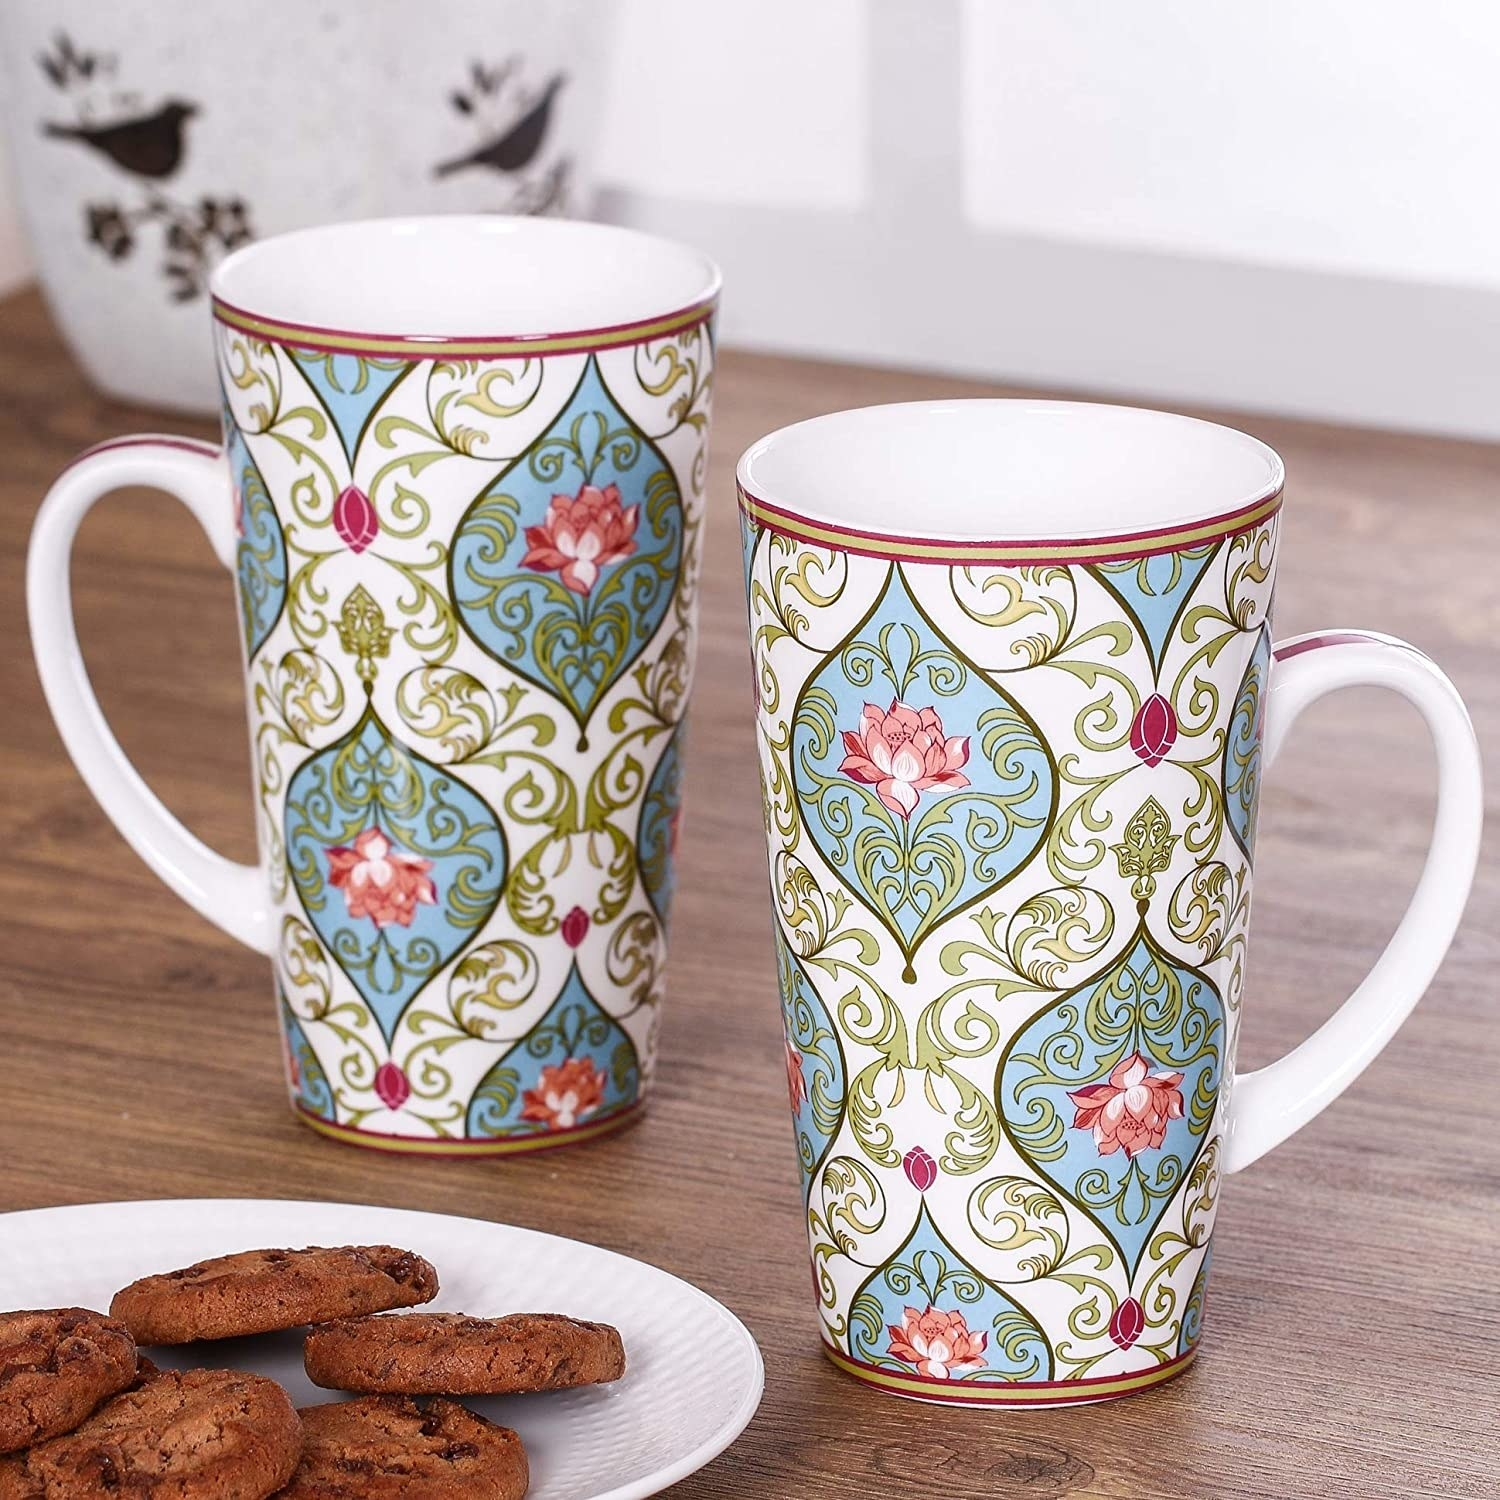 Two floral mugs next to a plate of cookies